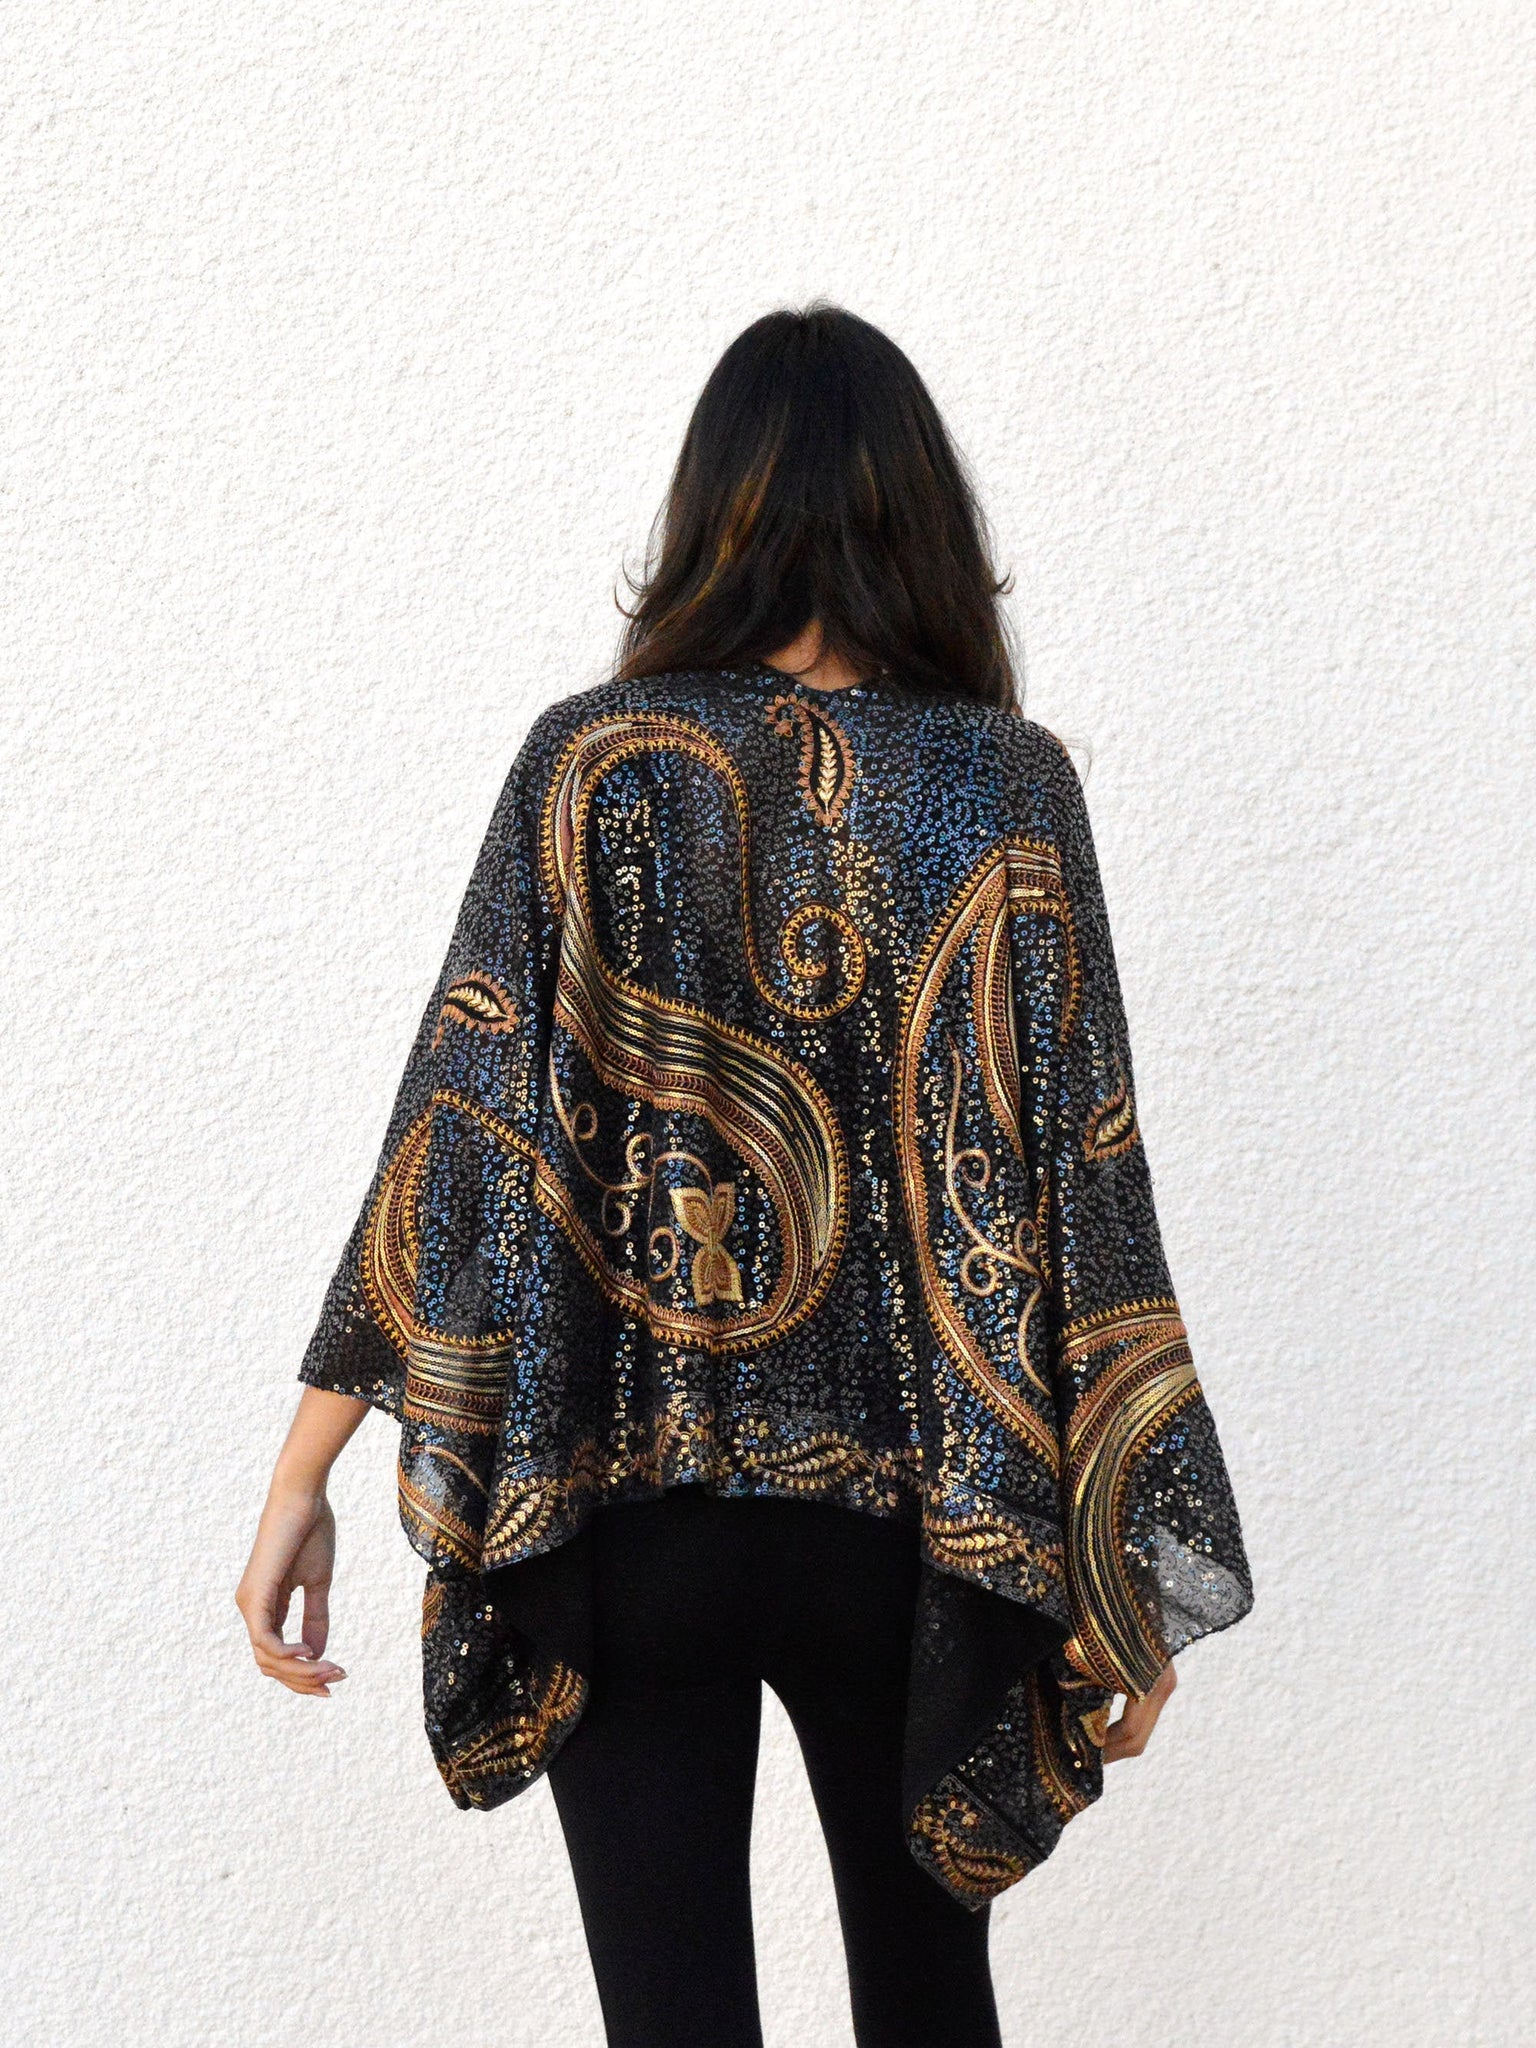 Back view of a model wearing a sequin kimono jacket with black and gold paisley designs.